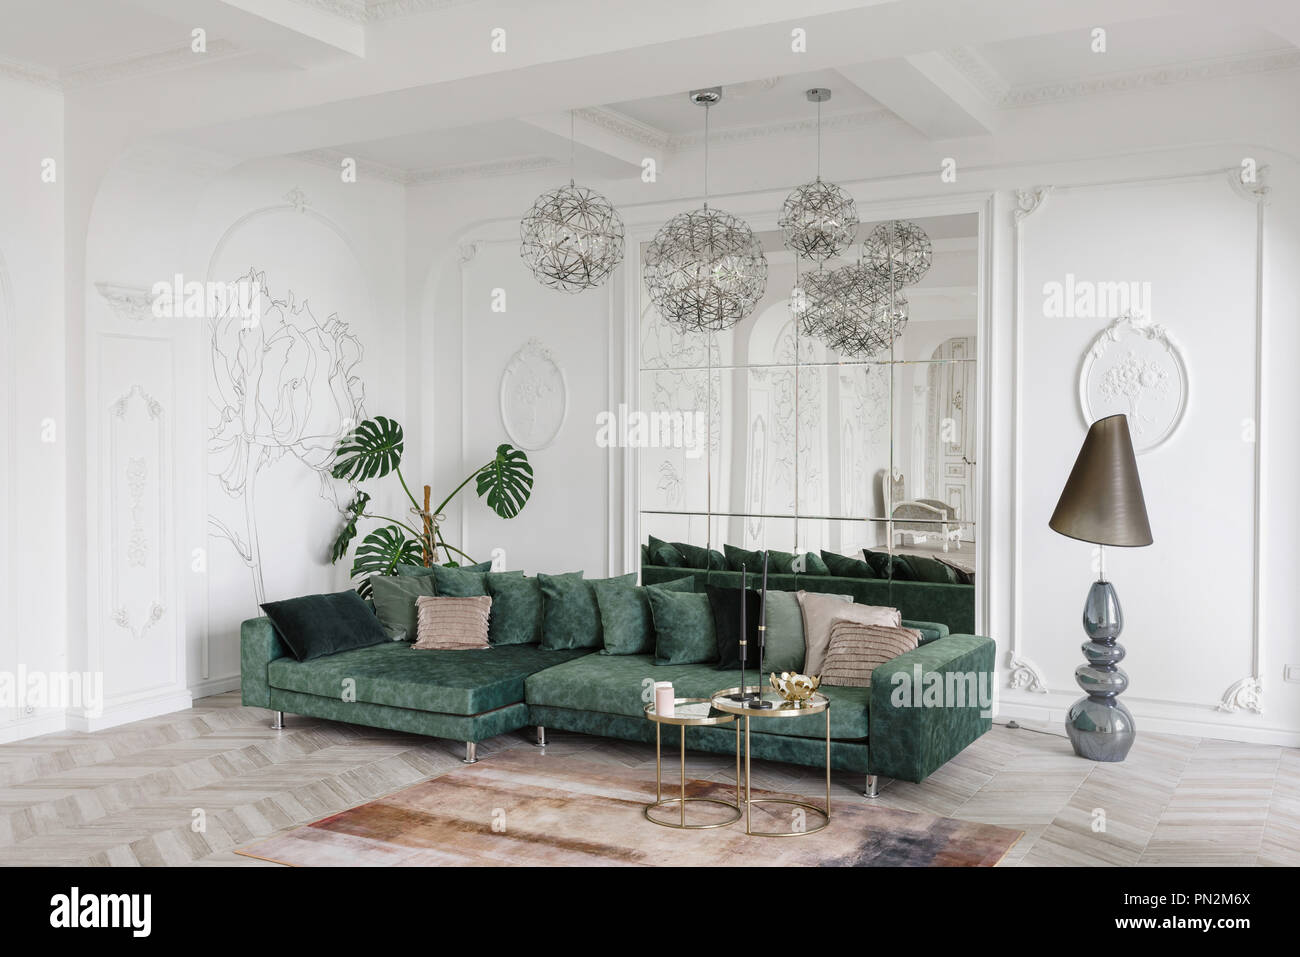 Morning in luxurious light interior in hotel bright and clean interior design of a luxury living room with parquet wood floors fireplace